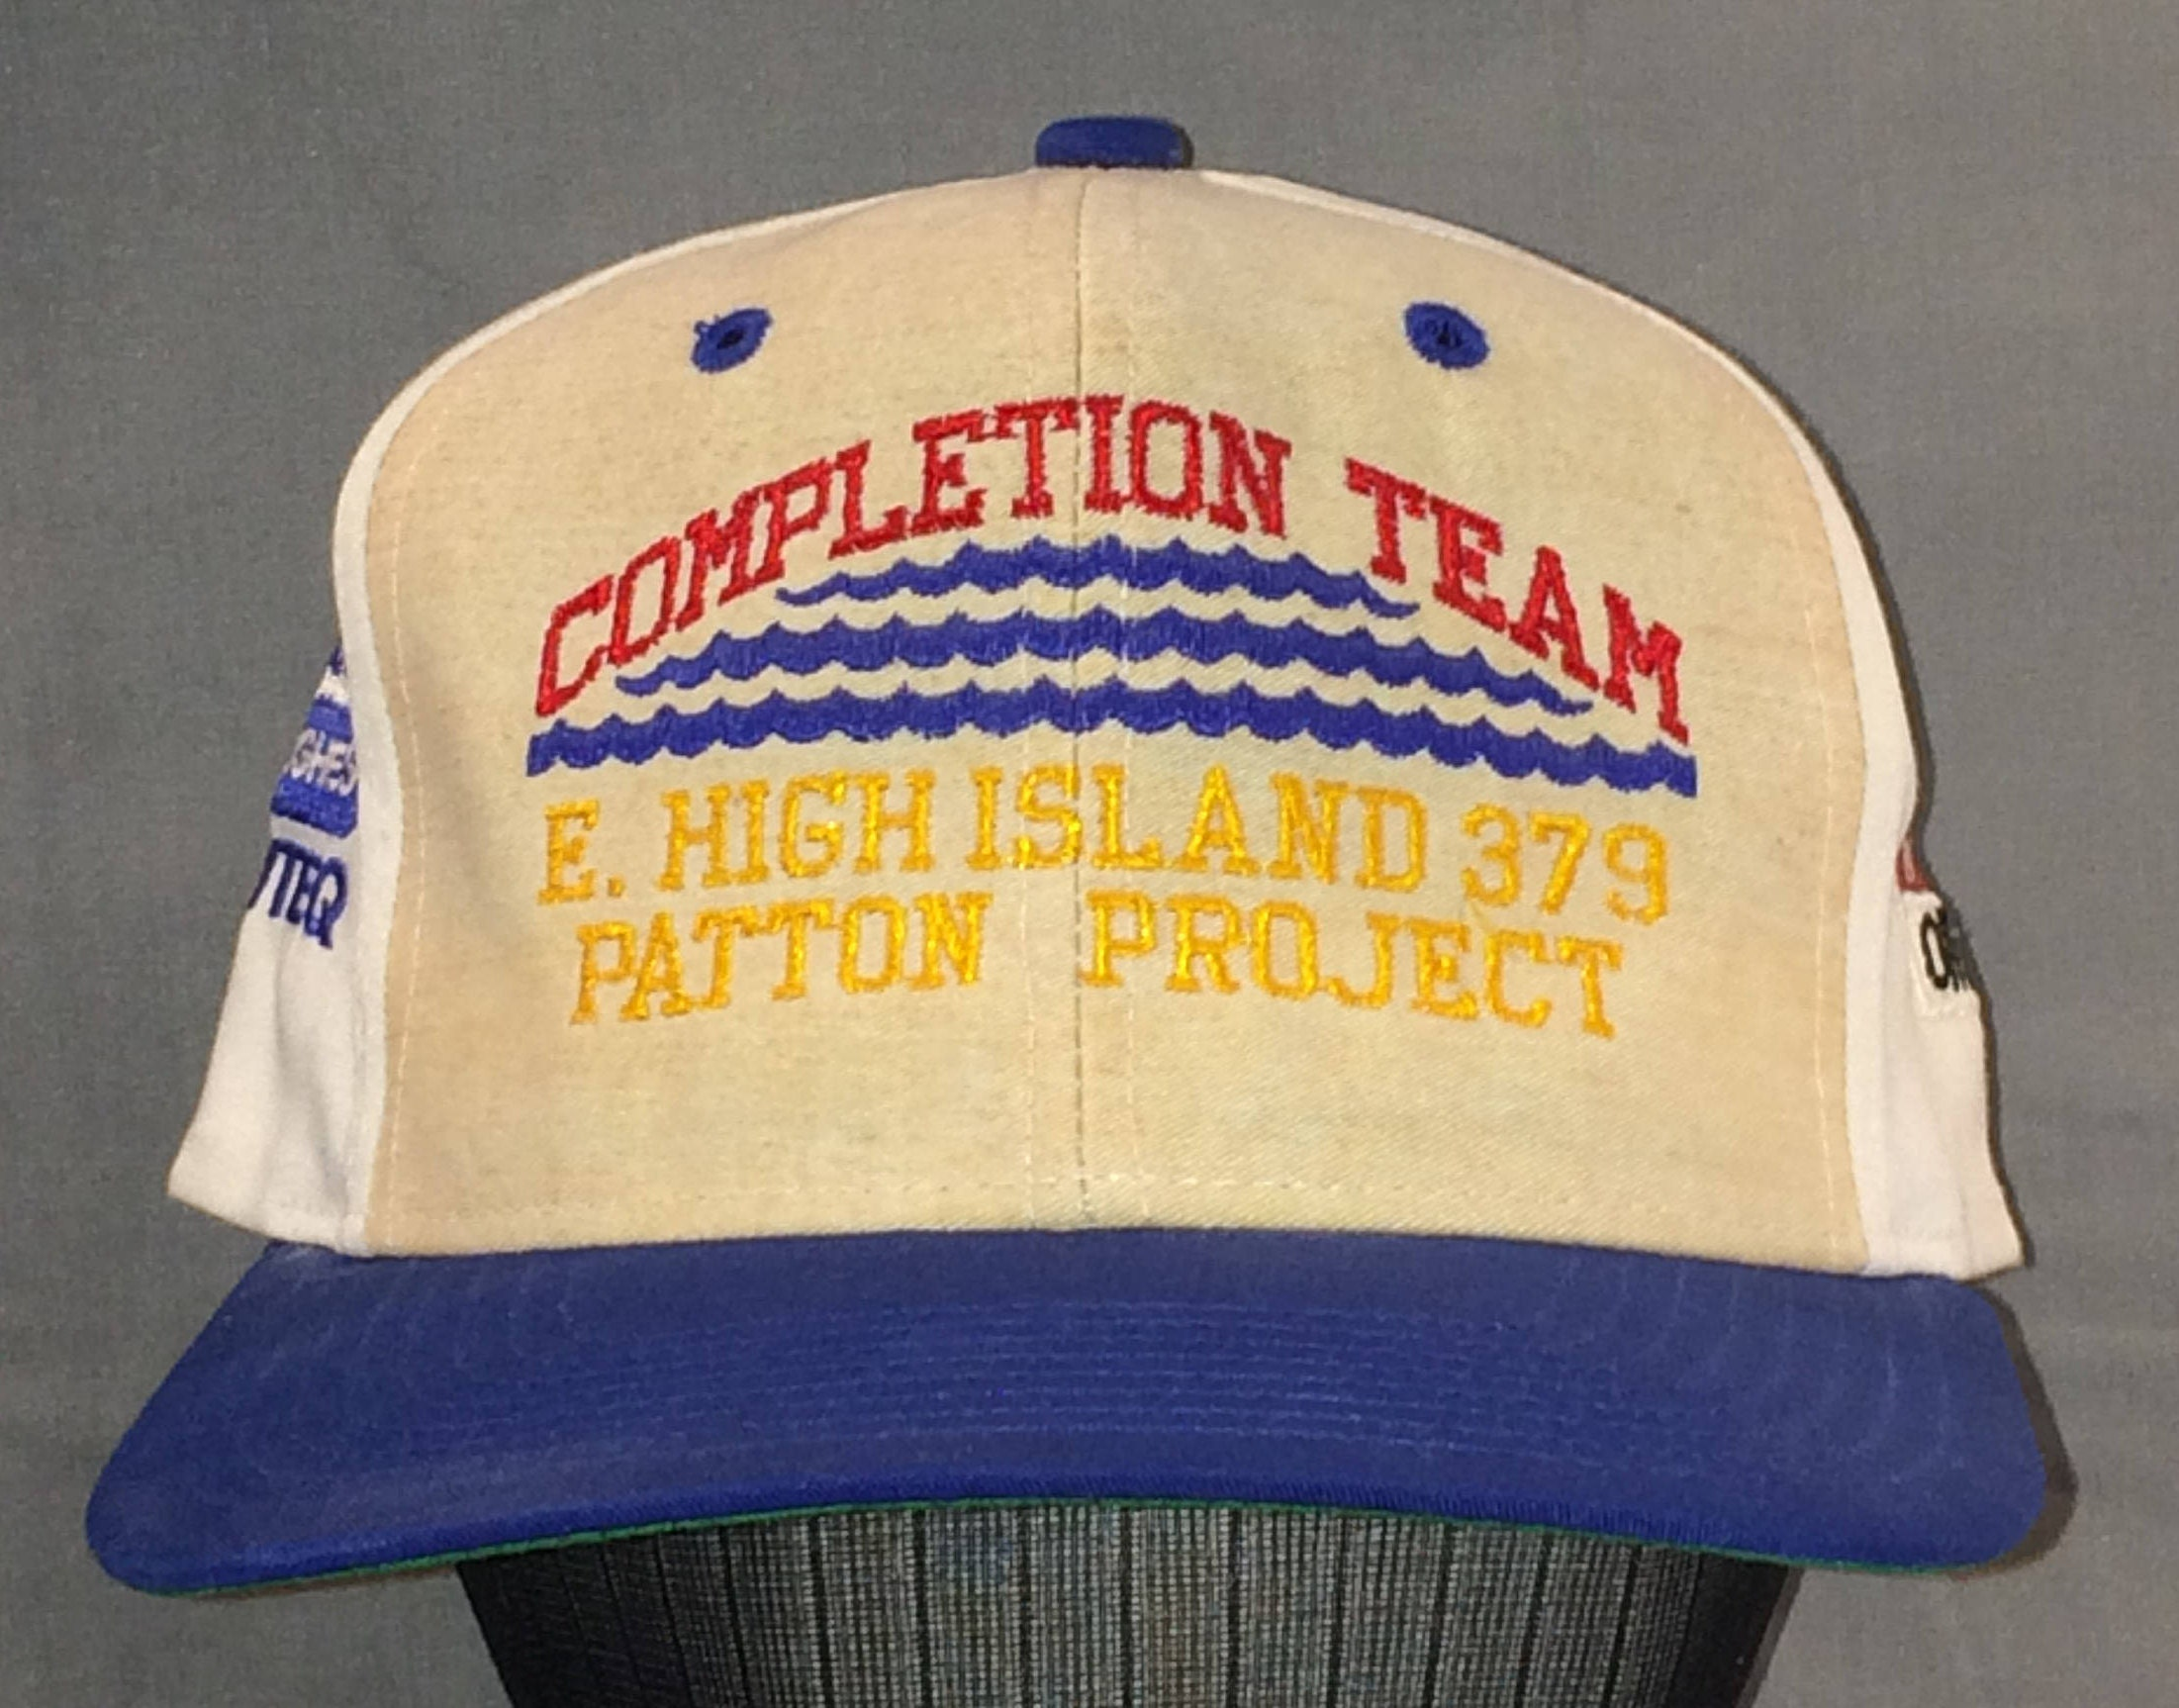 Vintage Snapback Hats >> Vintage Snapback Baseball Cap Trucker Style Snapback Hats For Men Completion Team E High Island Patton Project Hat T89 N7162